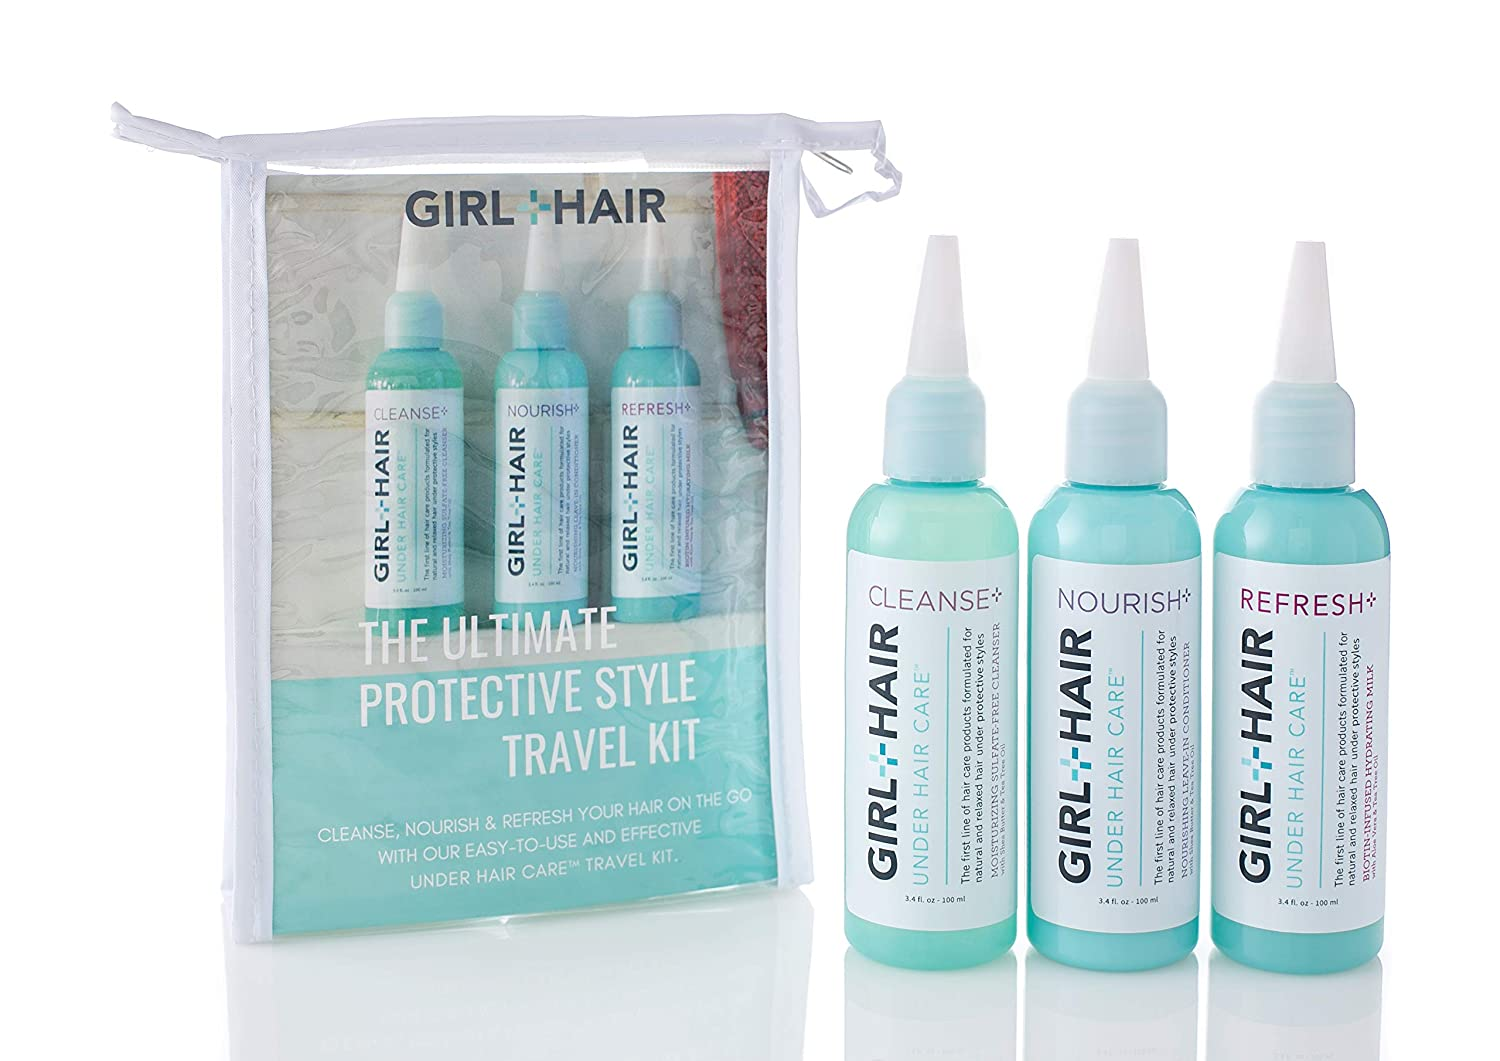 Girl+Hair Natural Hair Products, Under Hair Care Travel Kit, Encorage Hair Growth with Trial Sizes of Nourish - Cleanse - Refresh, 3.4 Fl Oz./100ml Each…